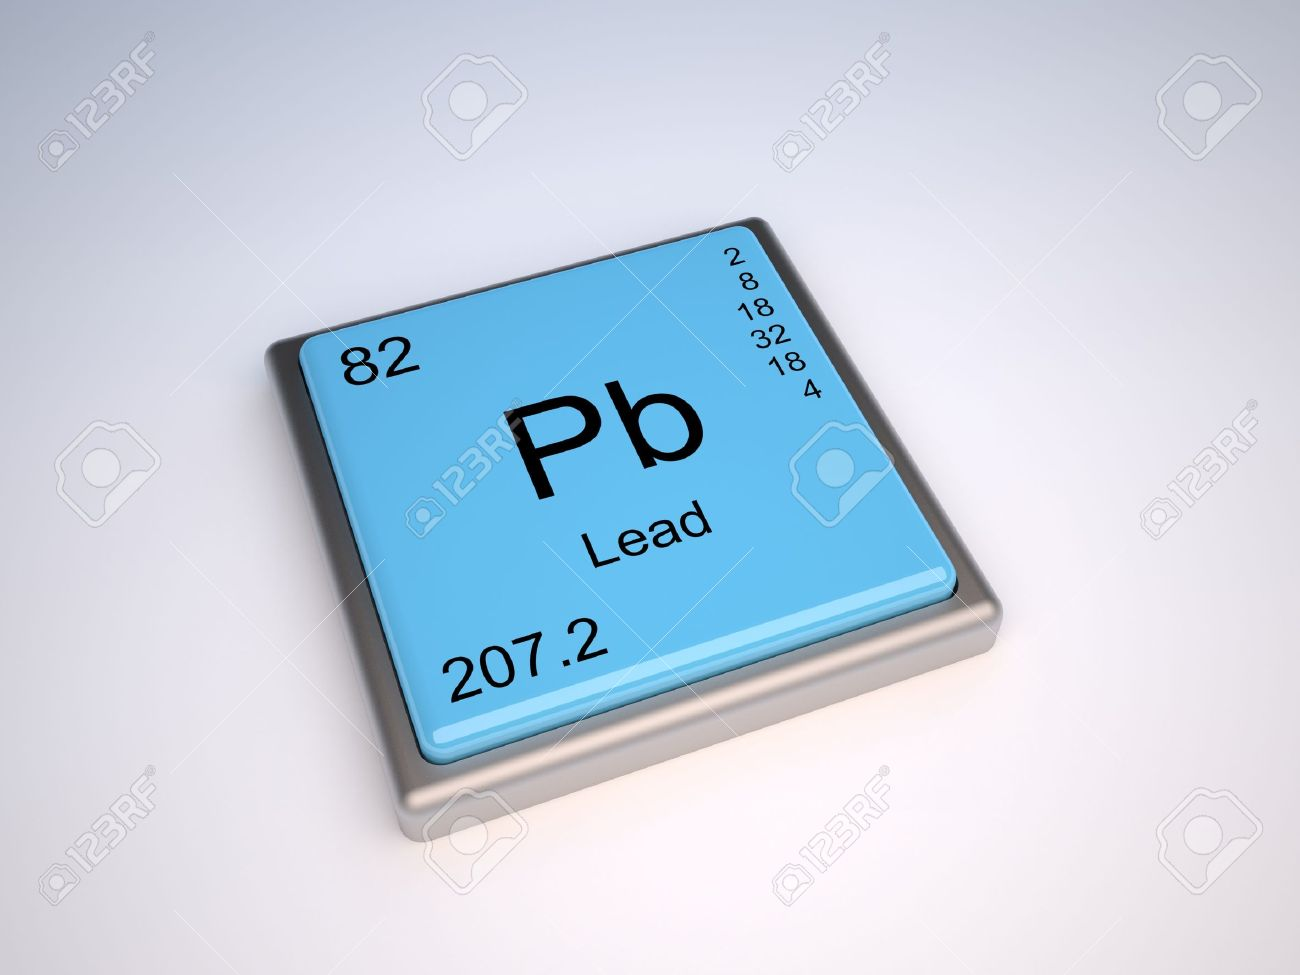 Lead chemical element of the periodic table with symbol pb stock lead chemical element of the periodic table with symbol pb stock photo 10062365 urtaz Image collections